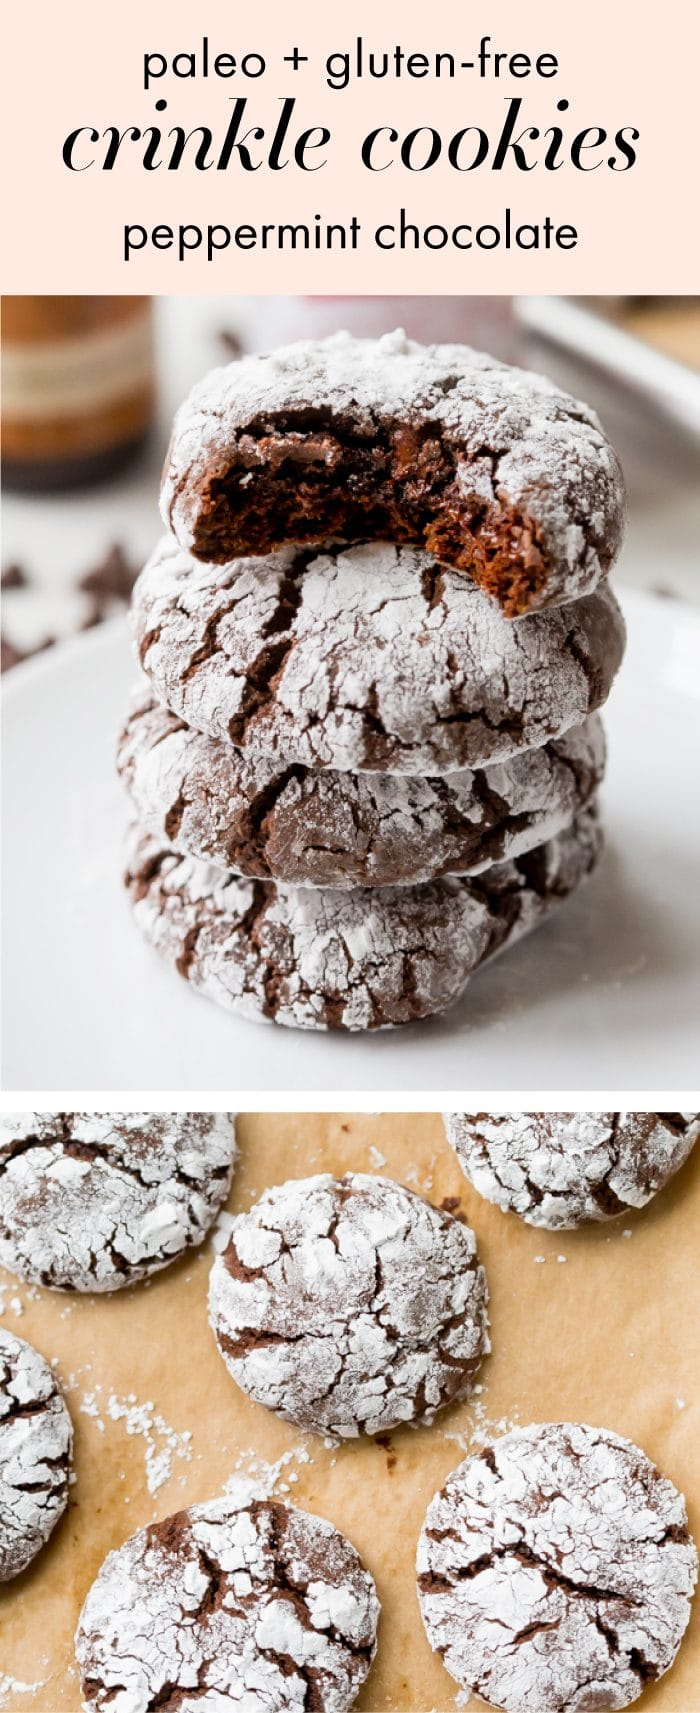 These peppermint paleo gluten-free crinkle cookies are fudgy and rich, perfect for the holidays. Grain-free and refined-sugar-free, these paleo gluten-free crinkle cookies are a guilt-free way to indulge in holiday treats without breaking your commitment to a healthier lifestyle. These paleo gluten-free crinkle cookies have hints of peppermint, making them positively festive. Your friends and family will never believe these gluten-free crinkle cookies are paleo!